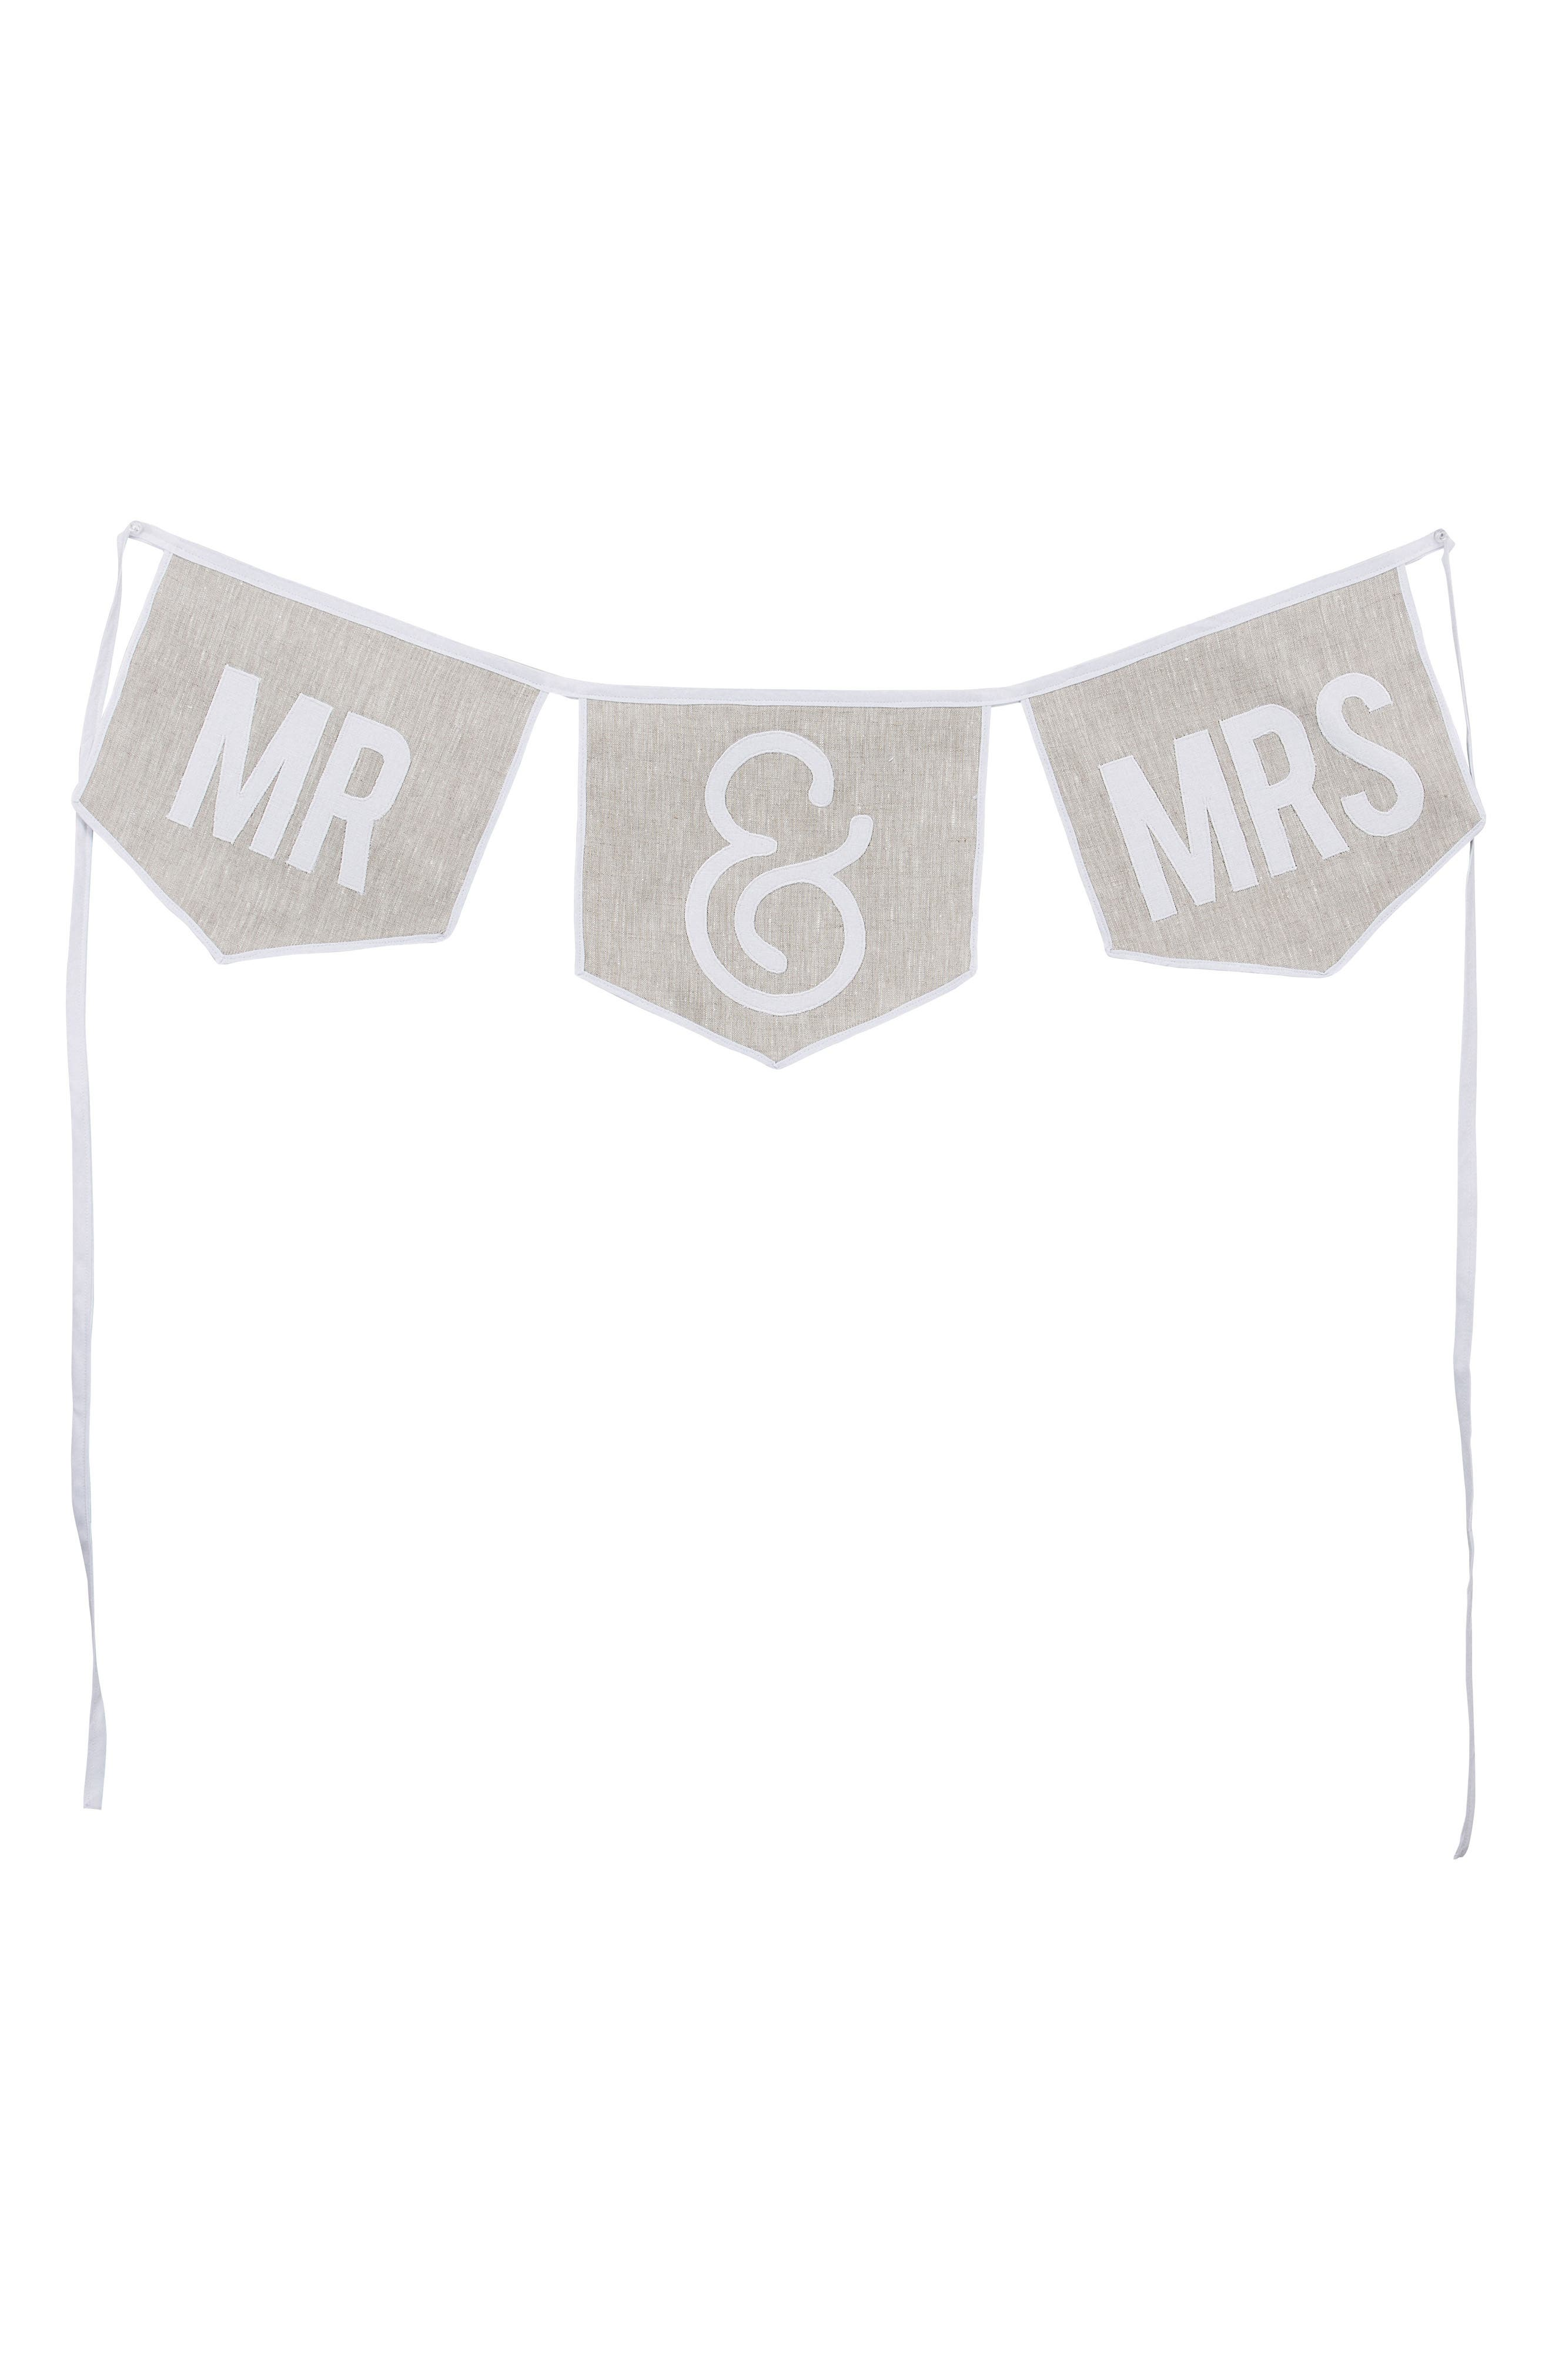 Mr & Mrs Banner,                             Main thumbnail 1, color,                             White/ Gray